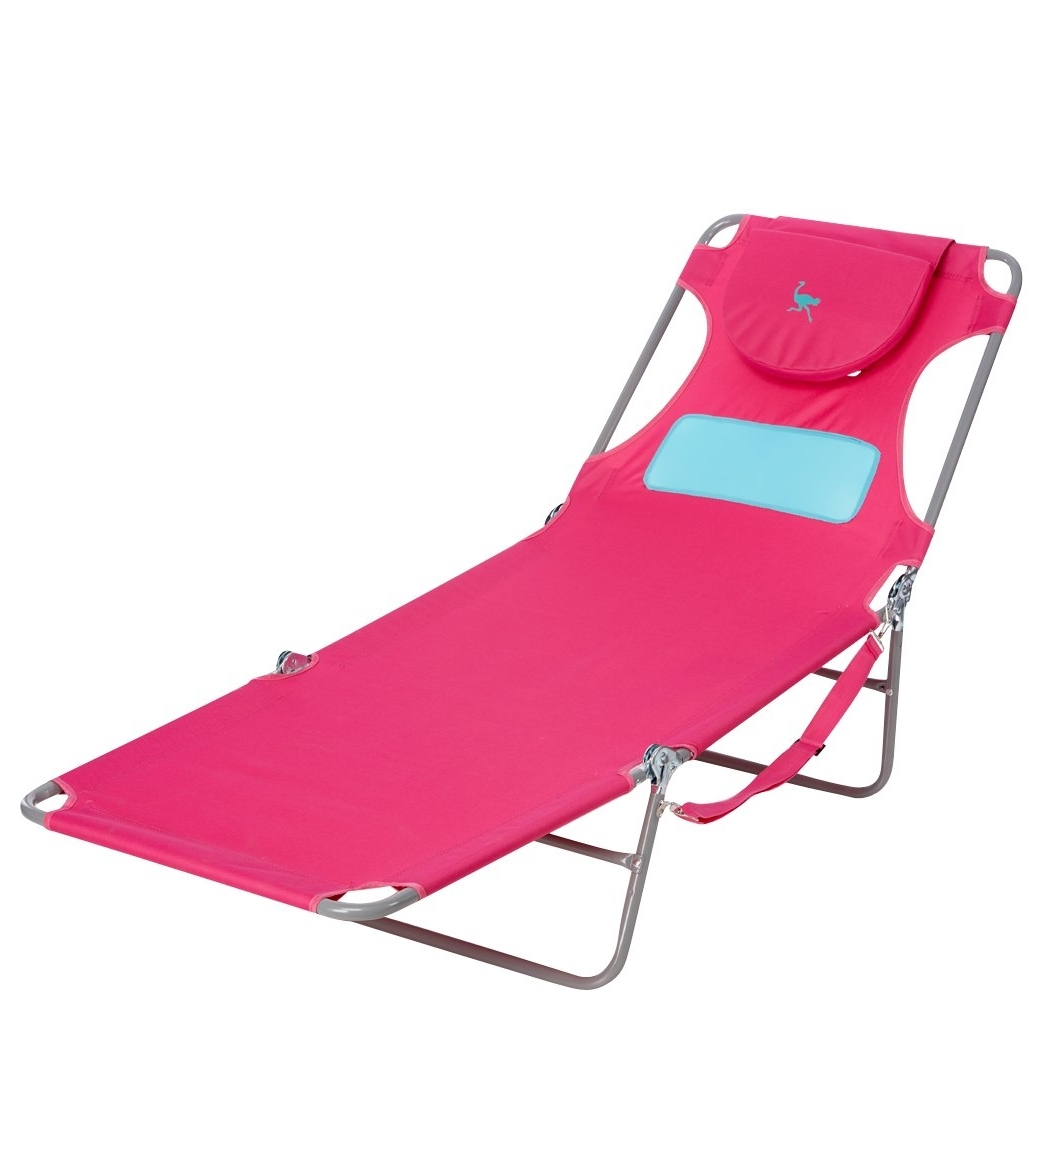 Chaise Lounge Chairs With Face Hole Intended For Best And Newest Ostrich Ladies' Face Down Chaise Lounge W/ Chest Cavity At (View 8 of 15)